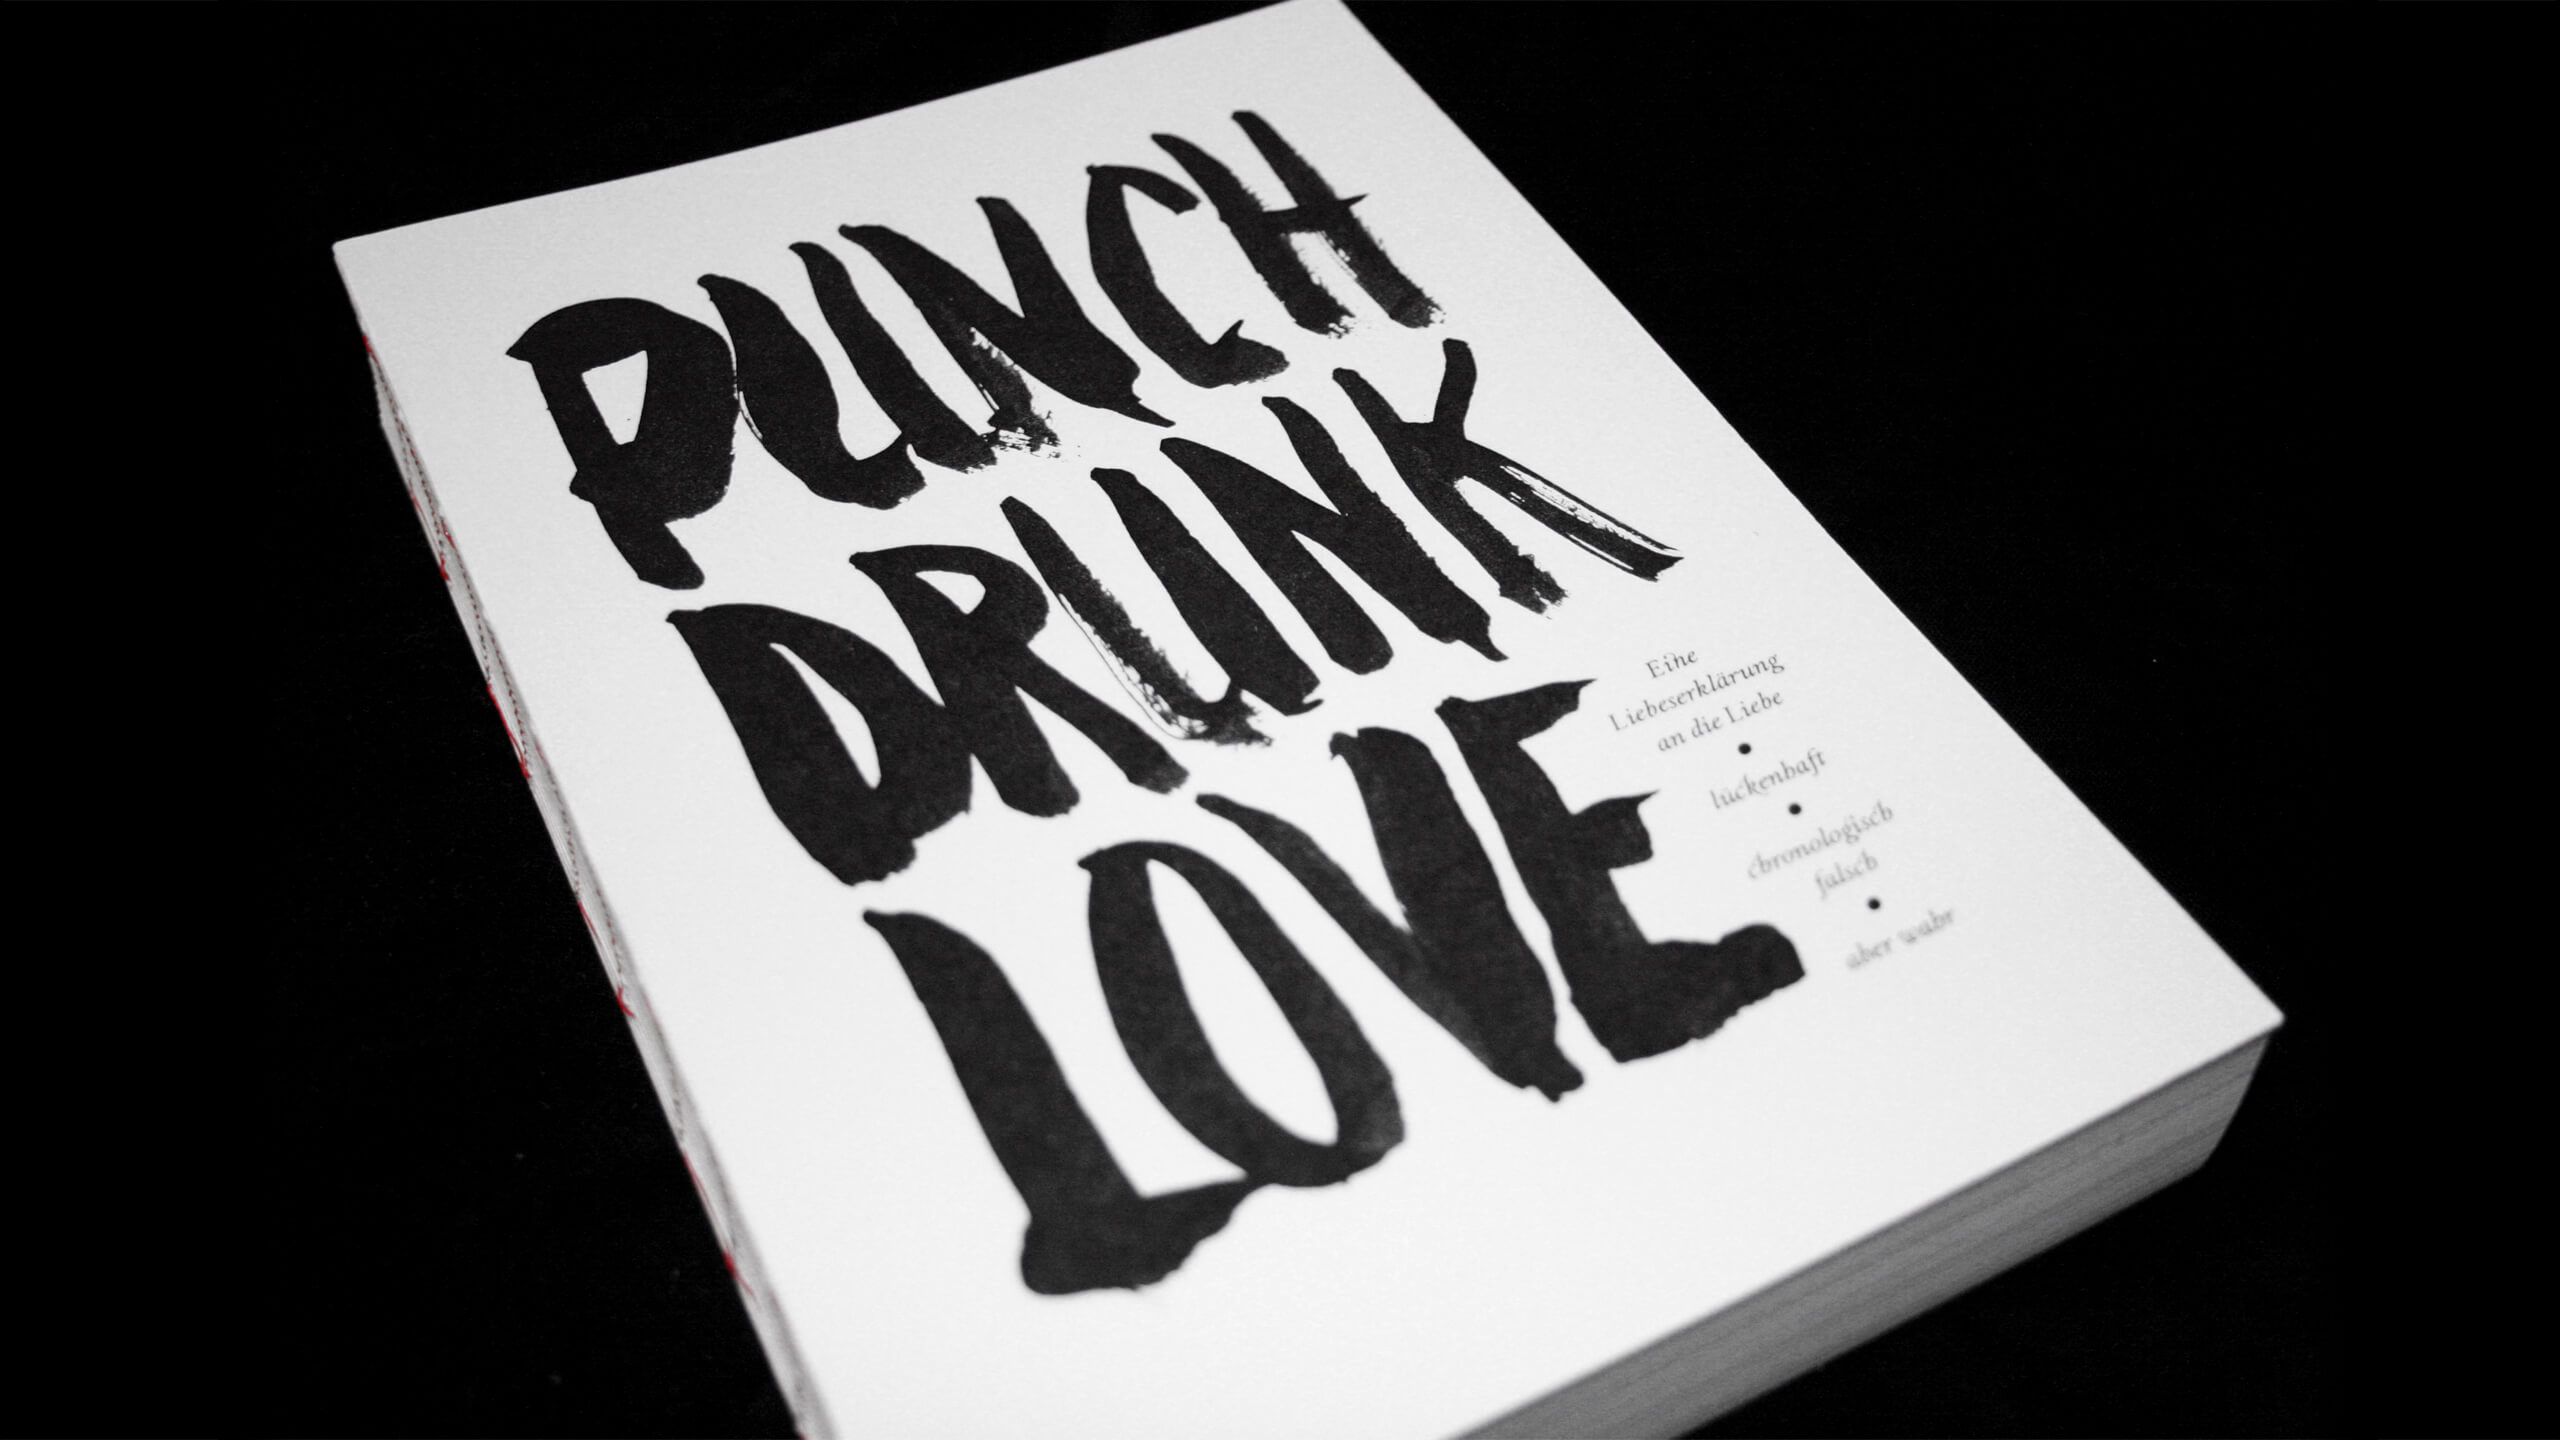 wirsindschoener_punch_drunk_love4_2560x1440